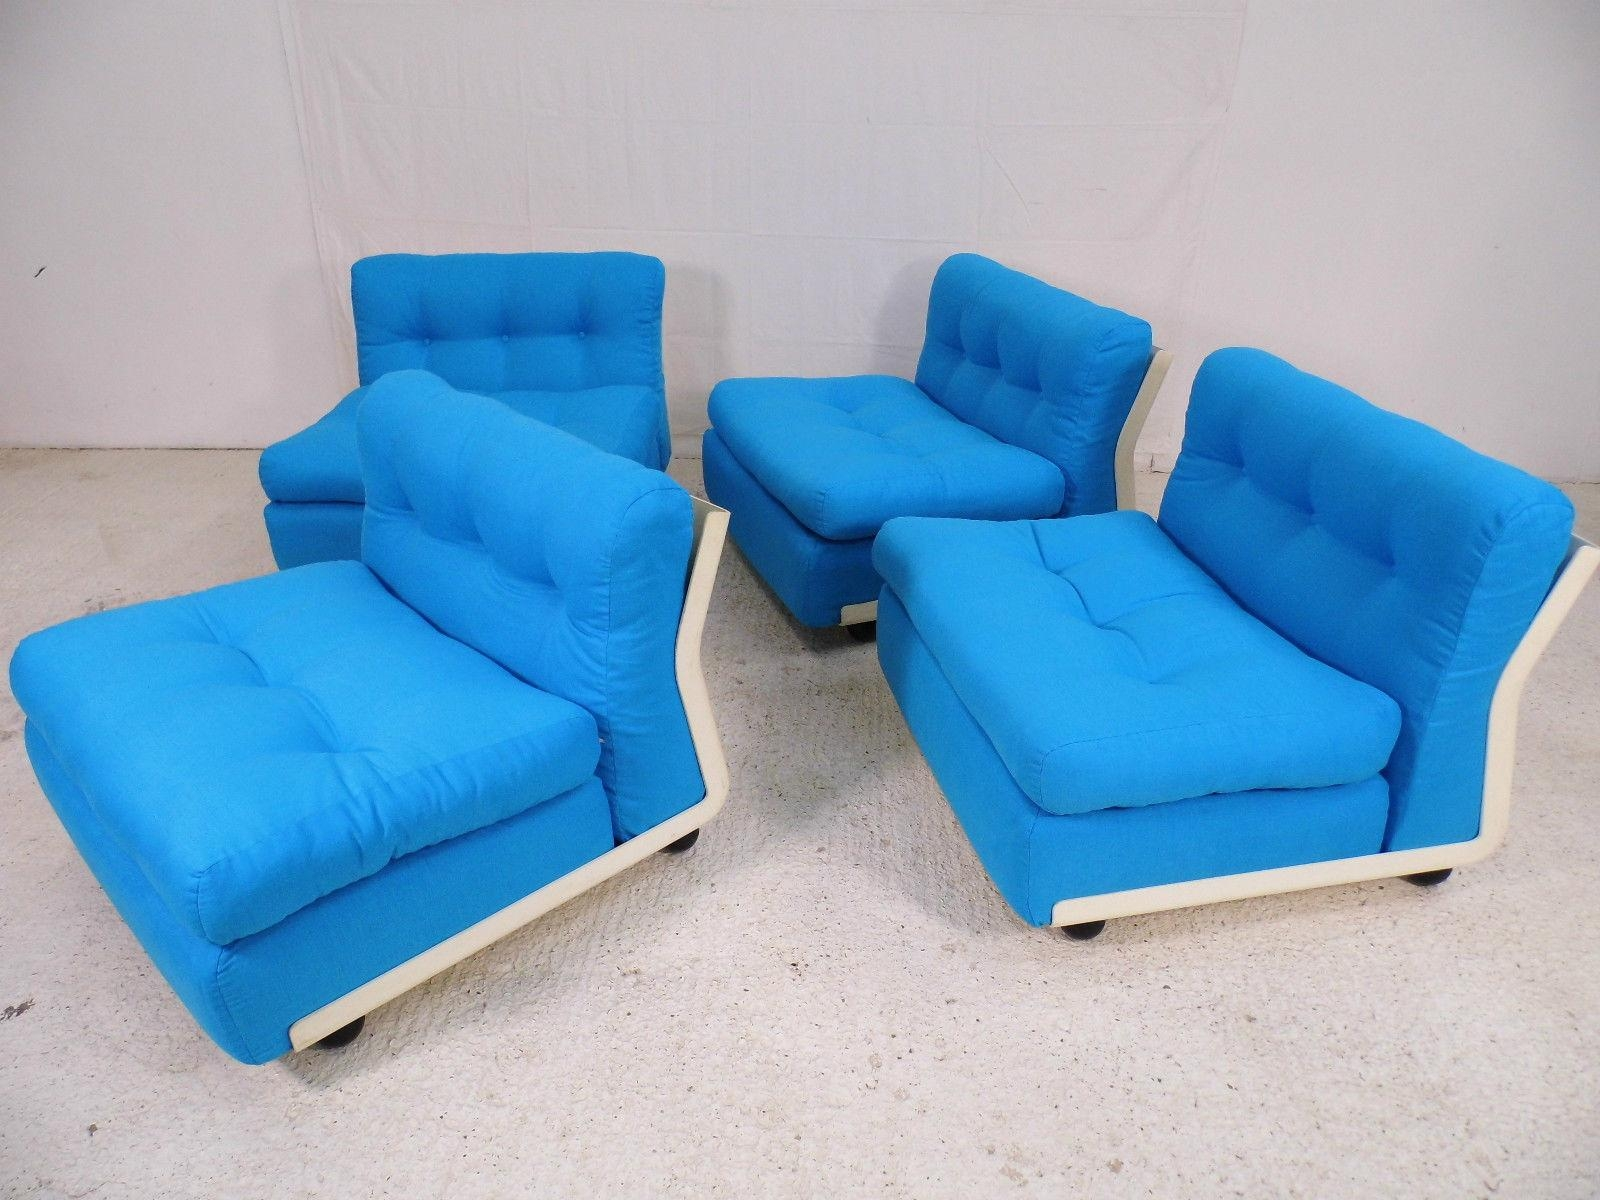 Modular Amanta 4 Seater Sofamario Bellini For C&b Italia, 1973 Within Bellini Sofas (View 17 of 20)